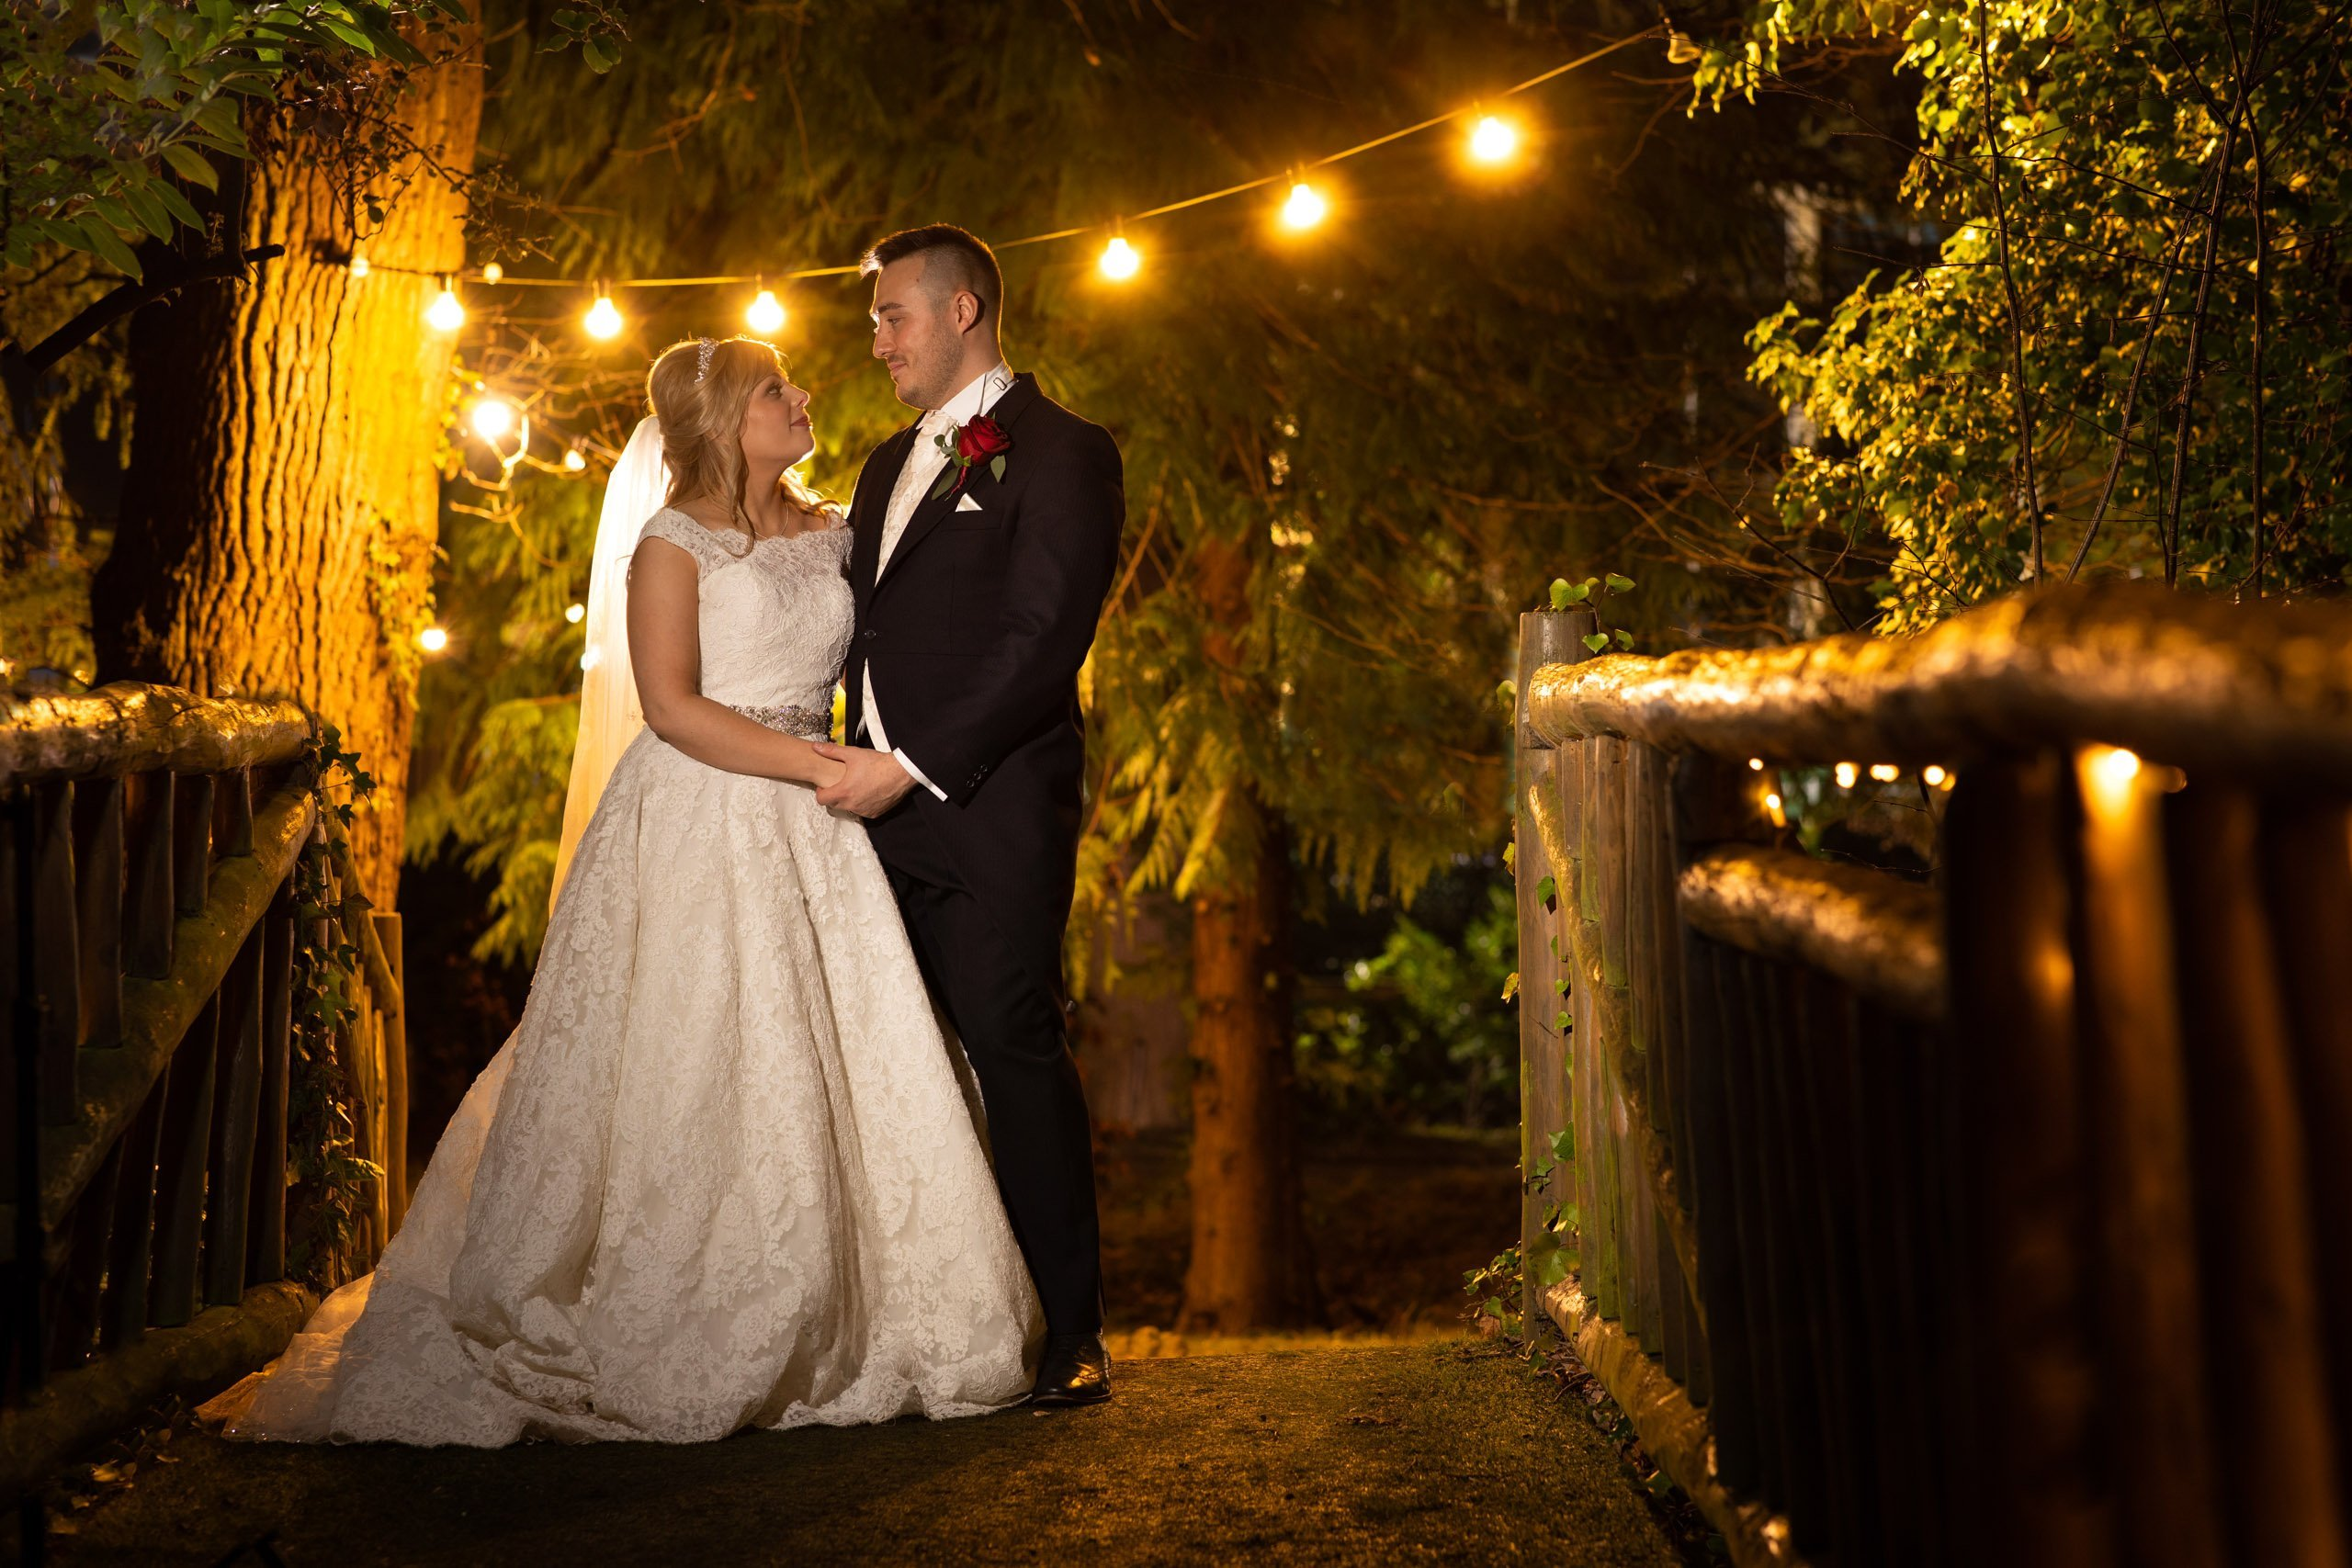 manor by the lake wedding picture bride and groom on bridge at night